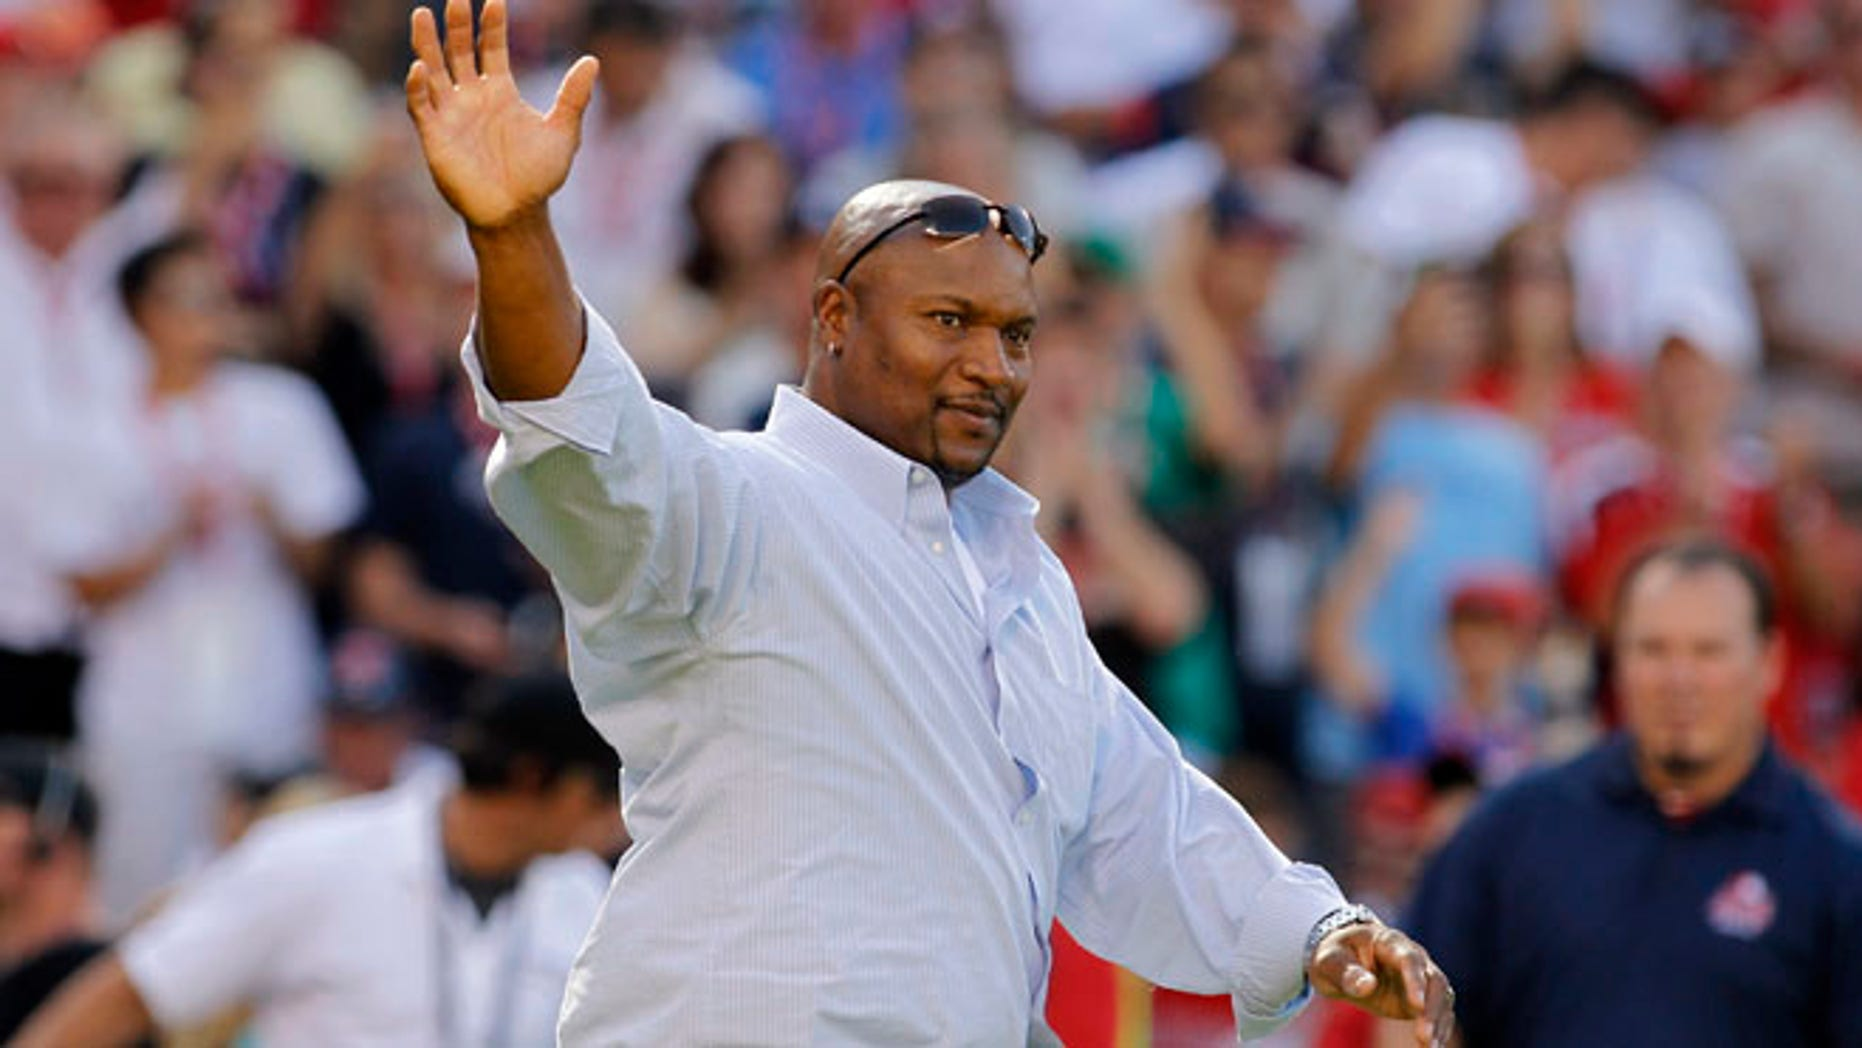 July 12: Former NFL and Major League Baseball player Bo Jackson comes out to throw a ceremonial first pitch for Major League Baseball's Home Run Derby at the All-Star Game in Anaheim, California.